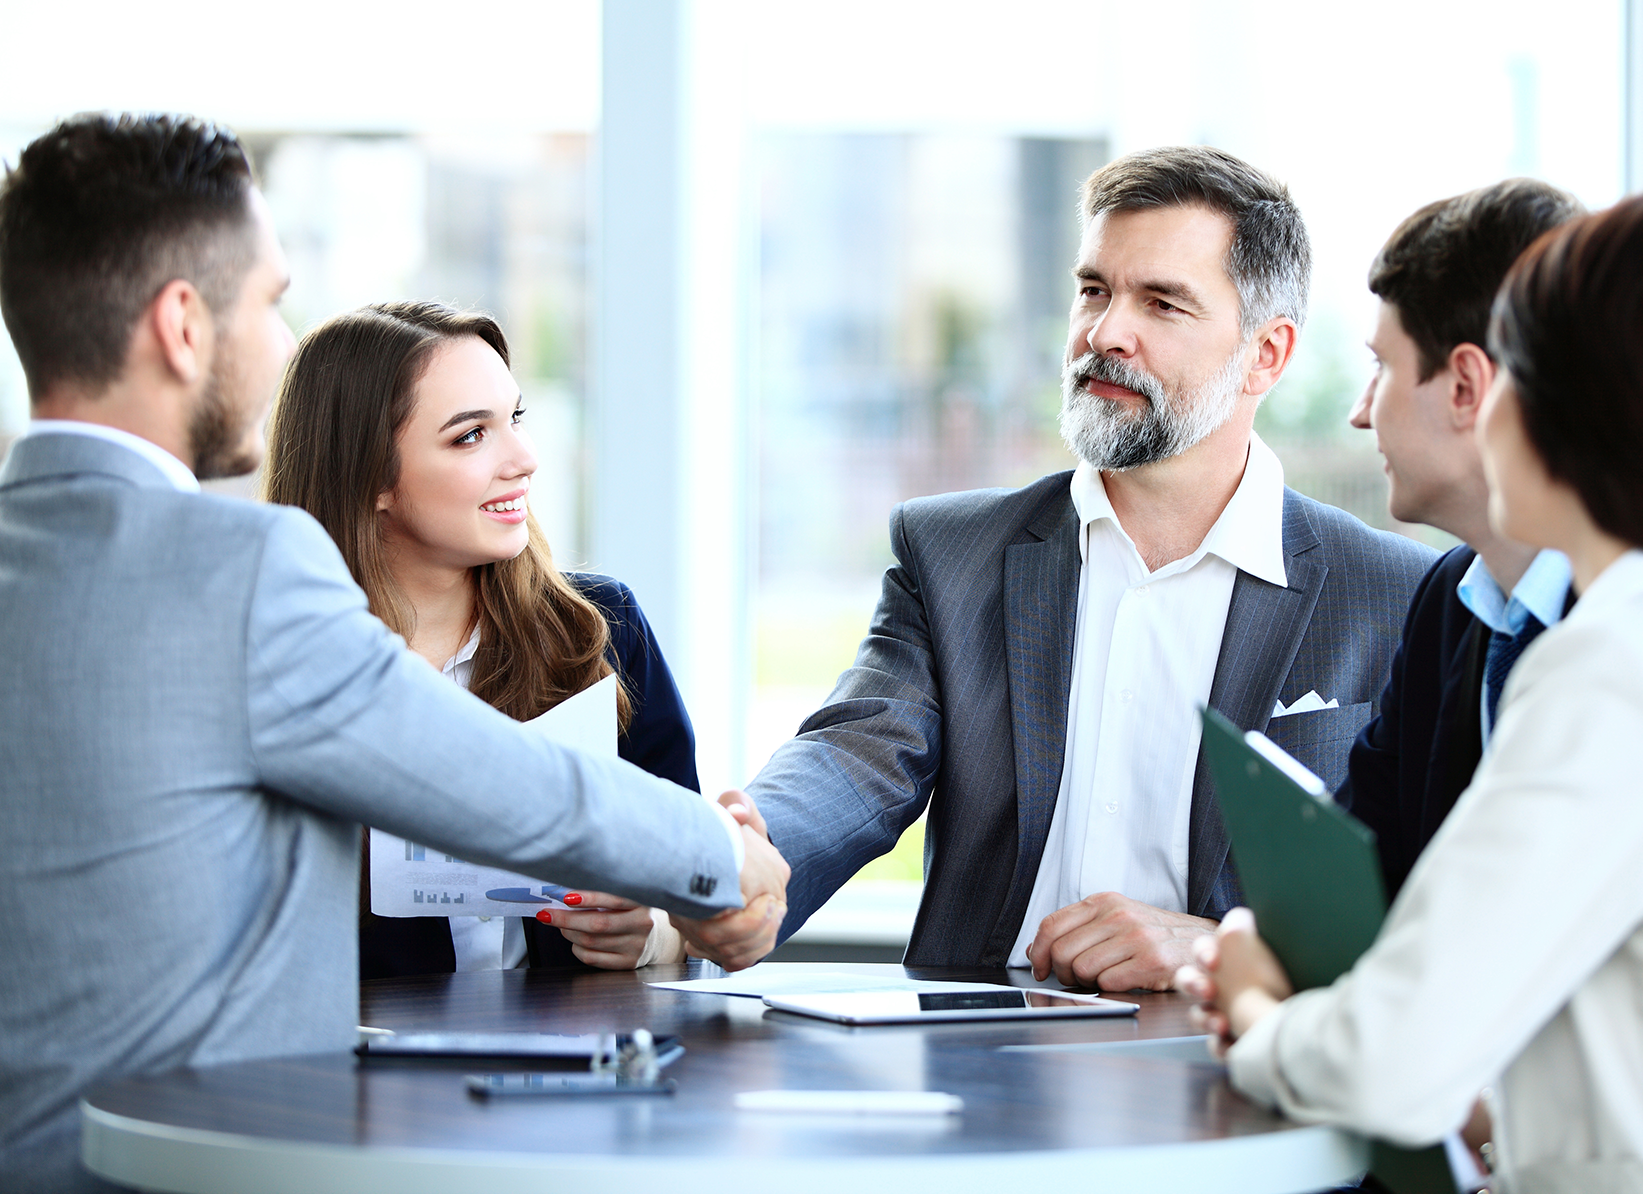 Investment Dealers: Representative image of wealth management professionals at work